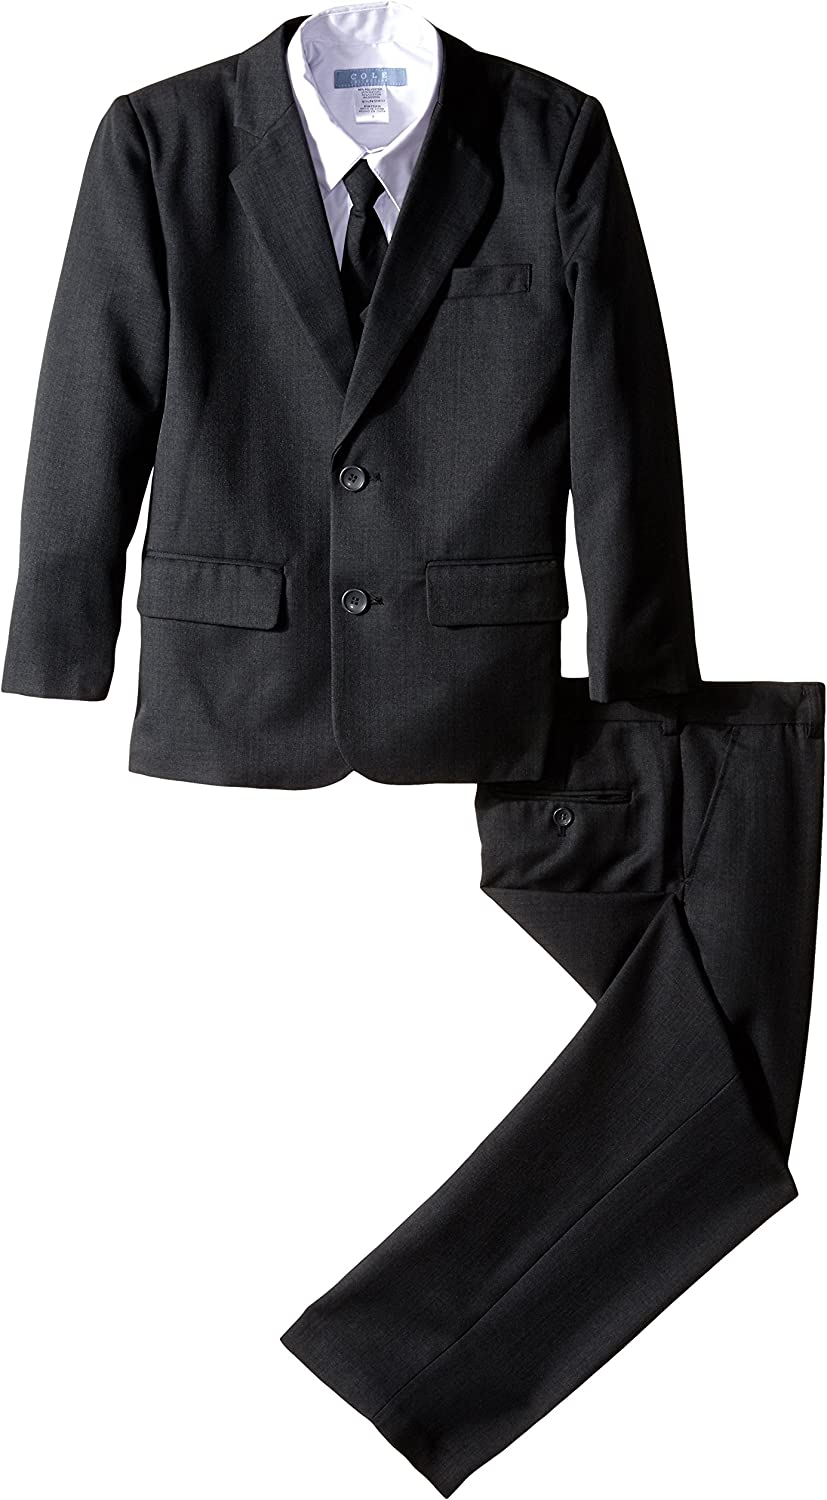 Cole Boys Suit with Vest Shirt famous Now free shipping and 5-Piece